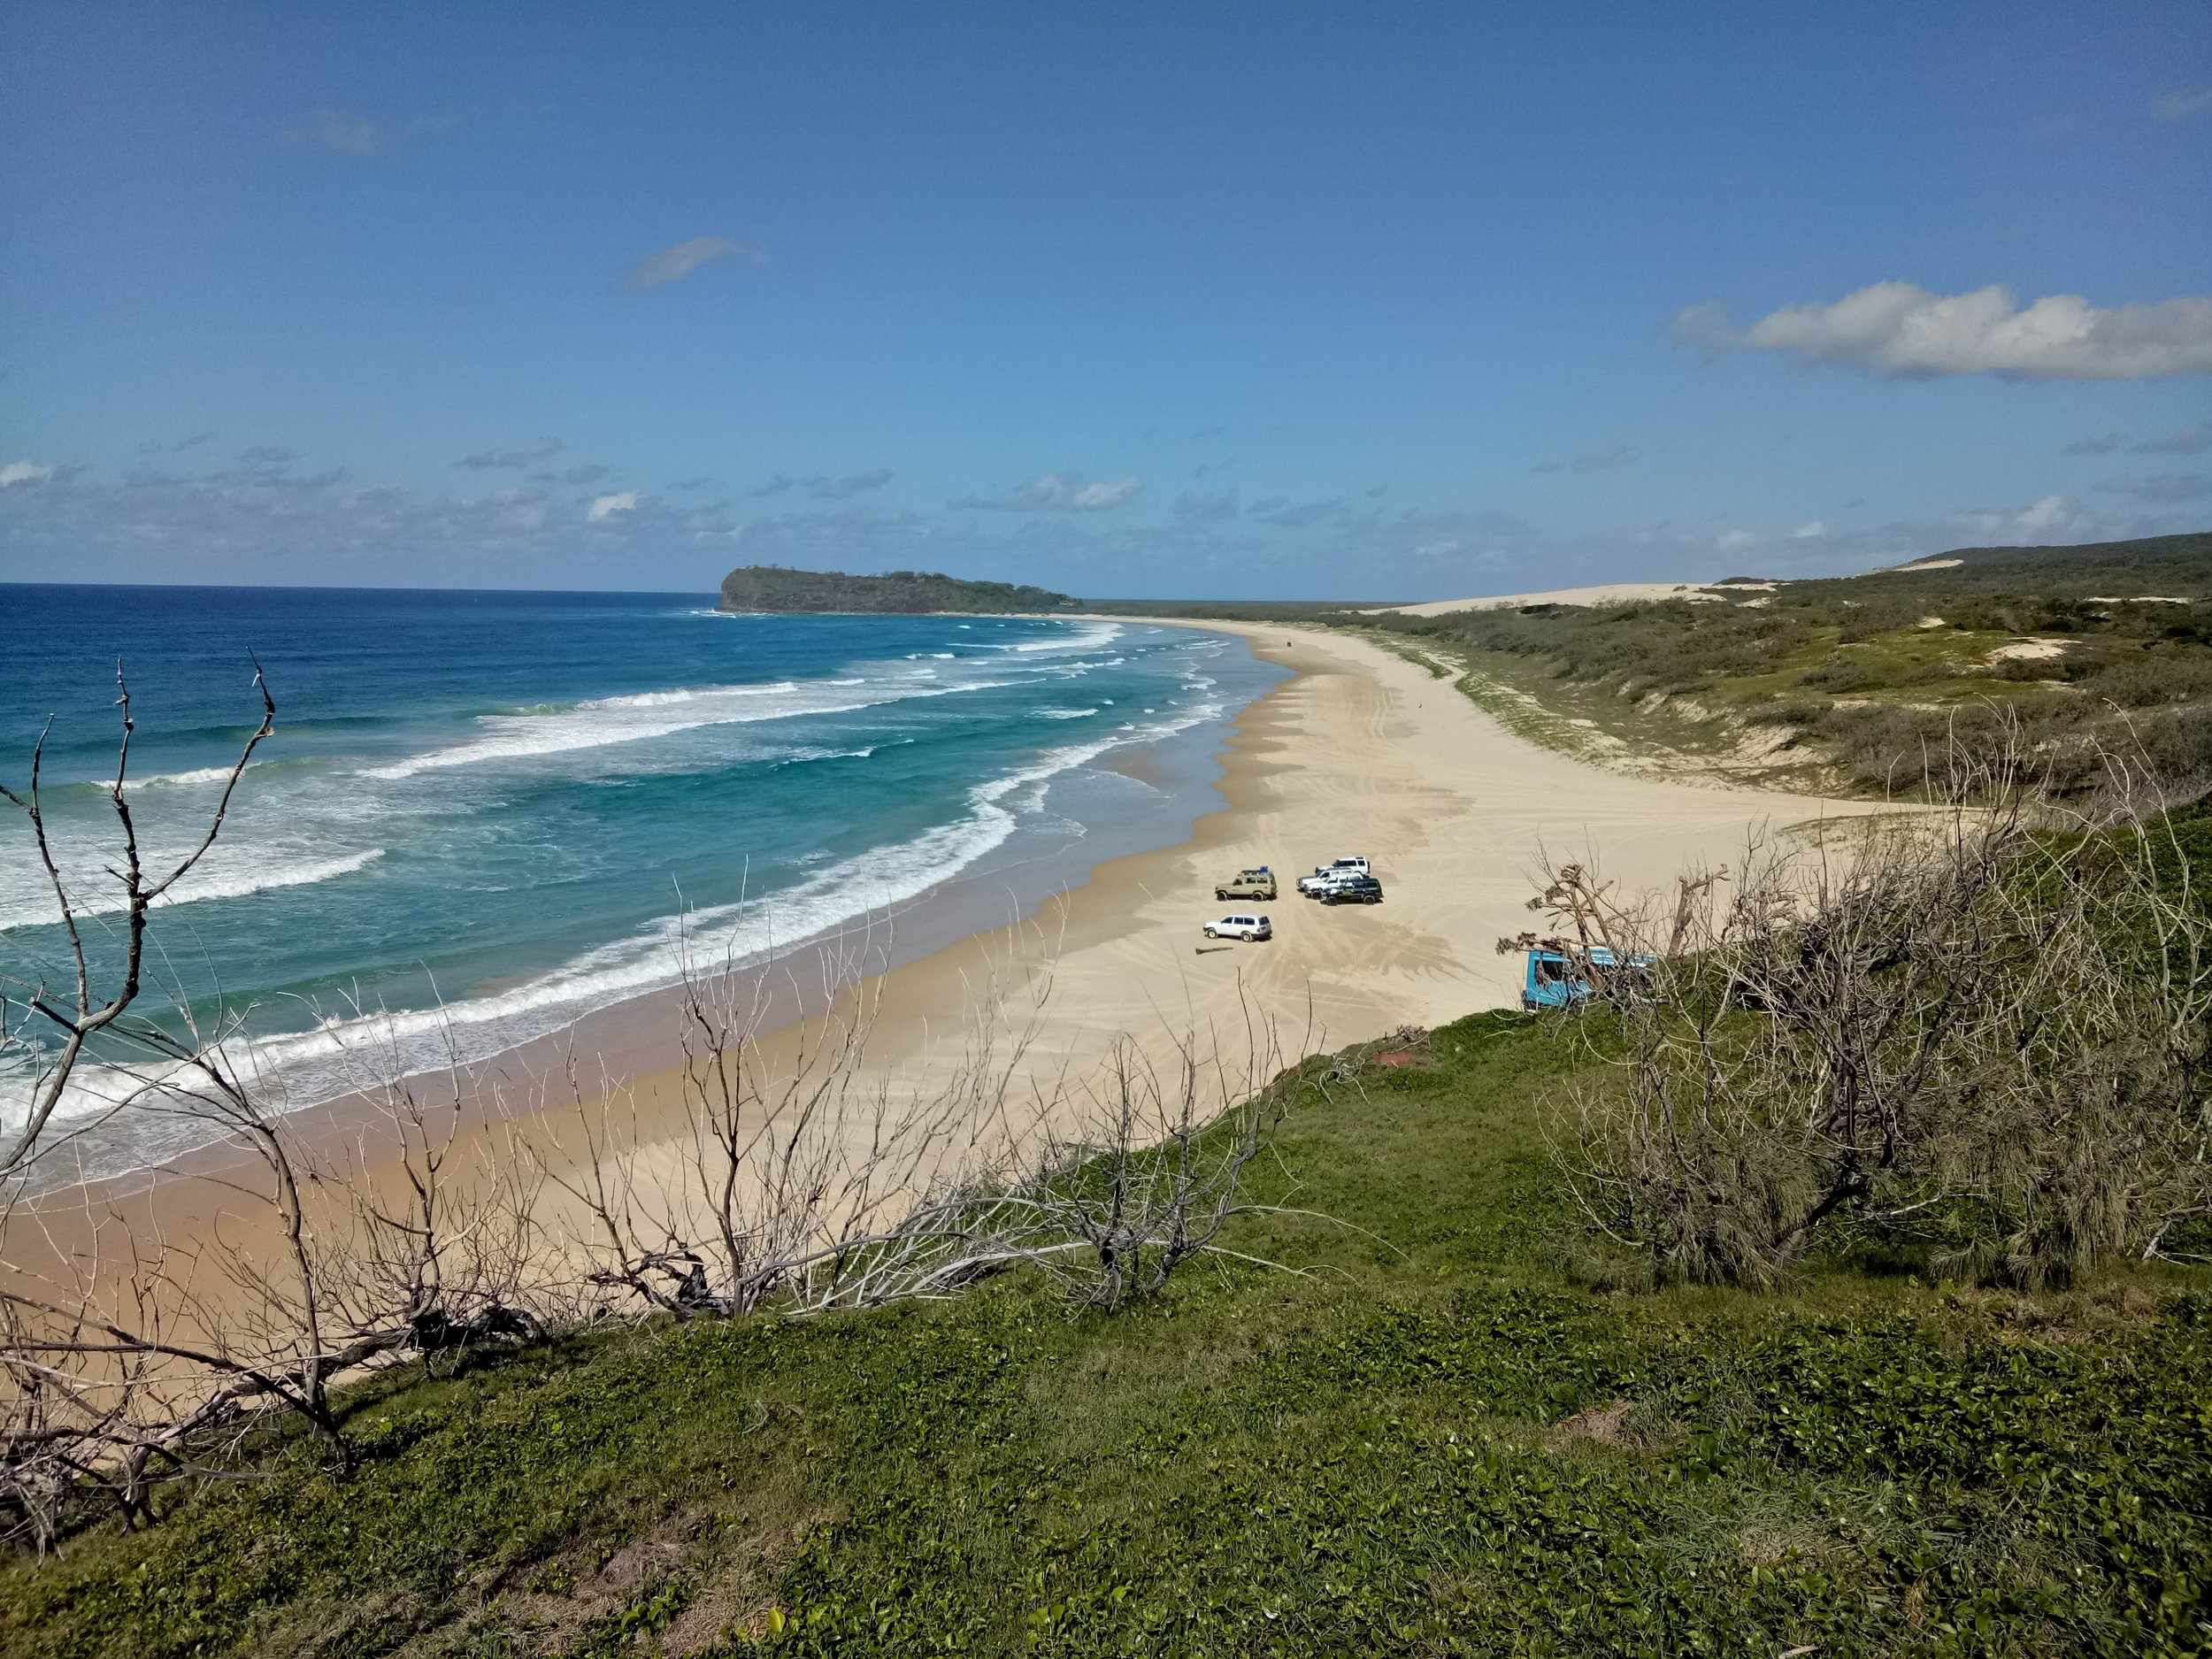 4x4s from the Champagne Pools boardwalk